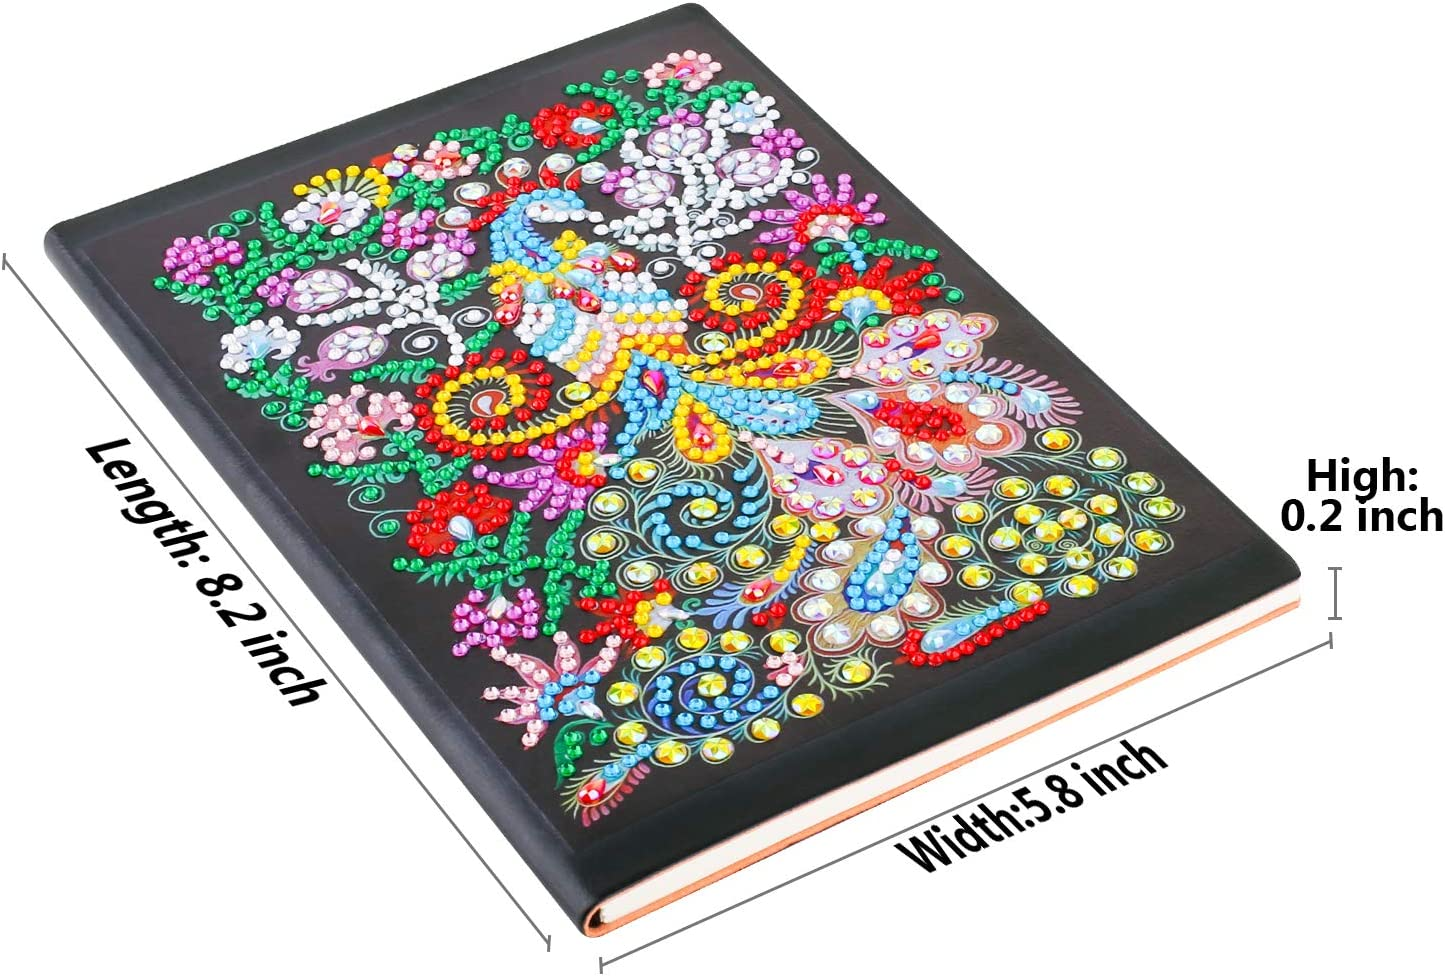 Diamond Painting Notebook Diamond Art Cover Diary Book DIY Journal Book 104 Pages A5 Plain//Blank Book for Writing and Planning Colorful Peacock